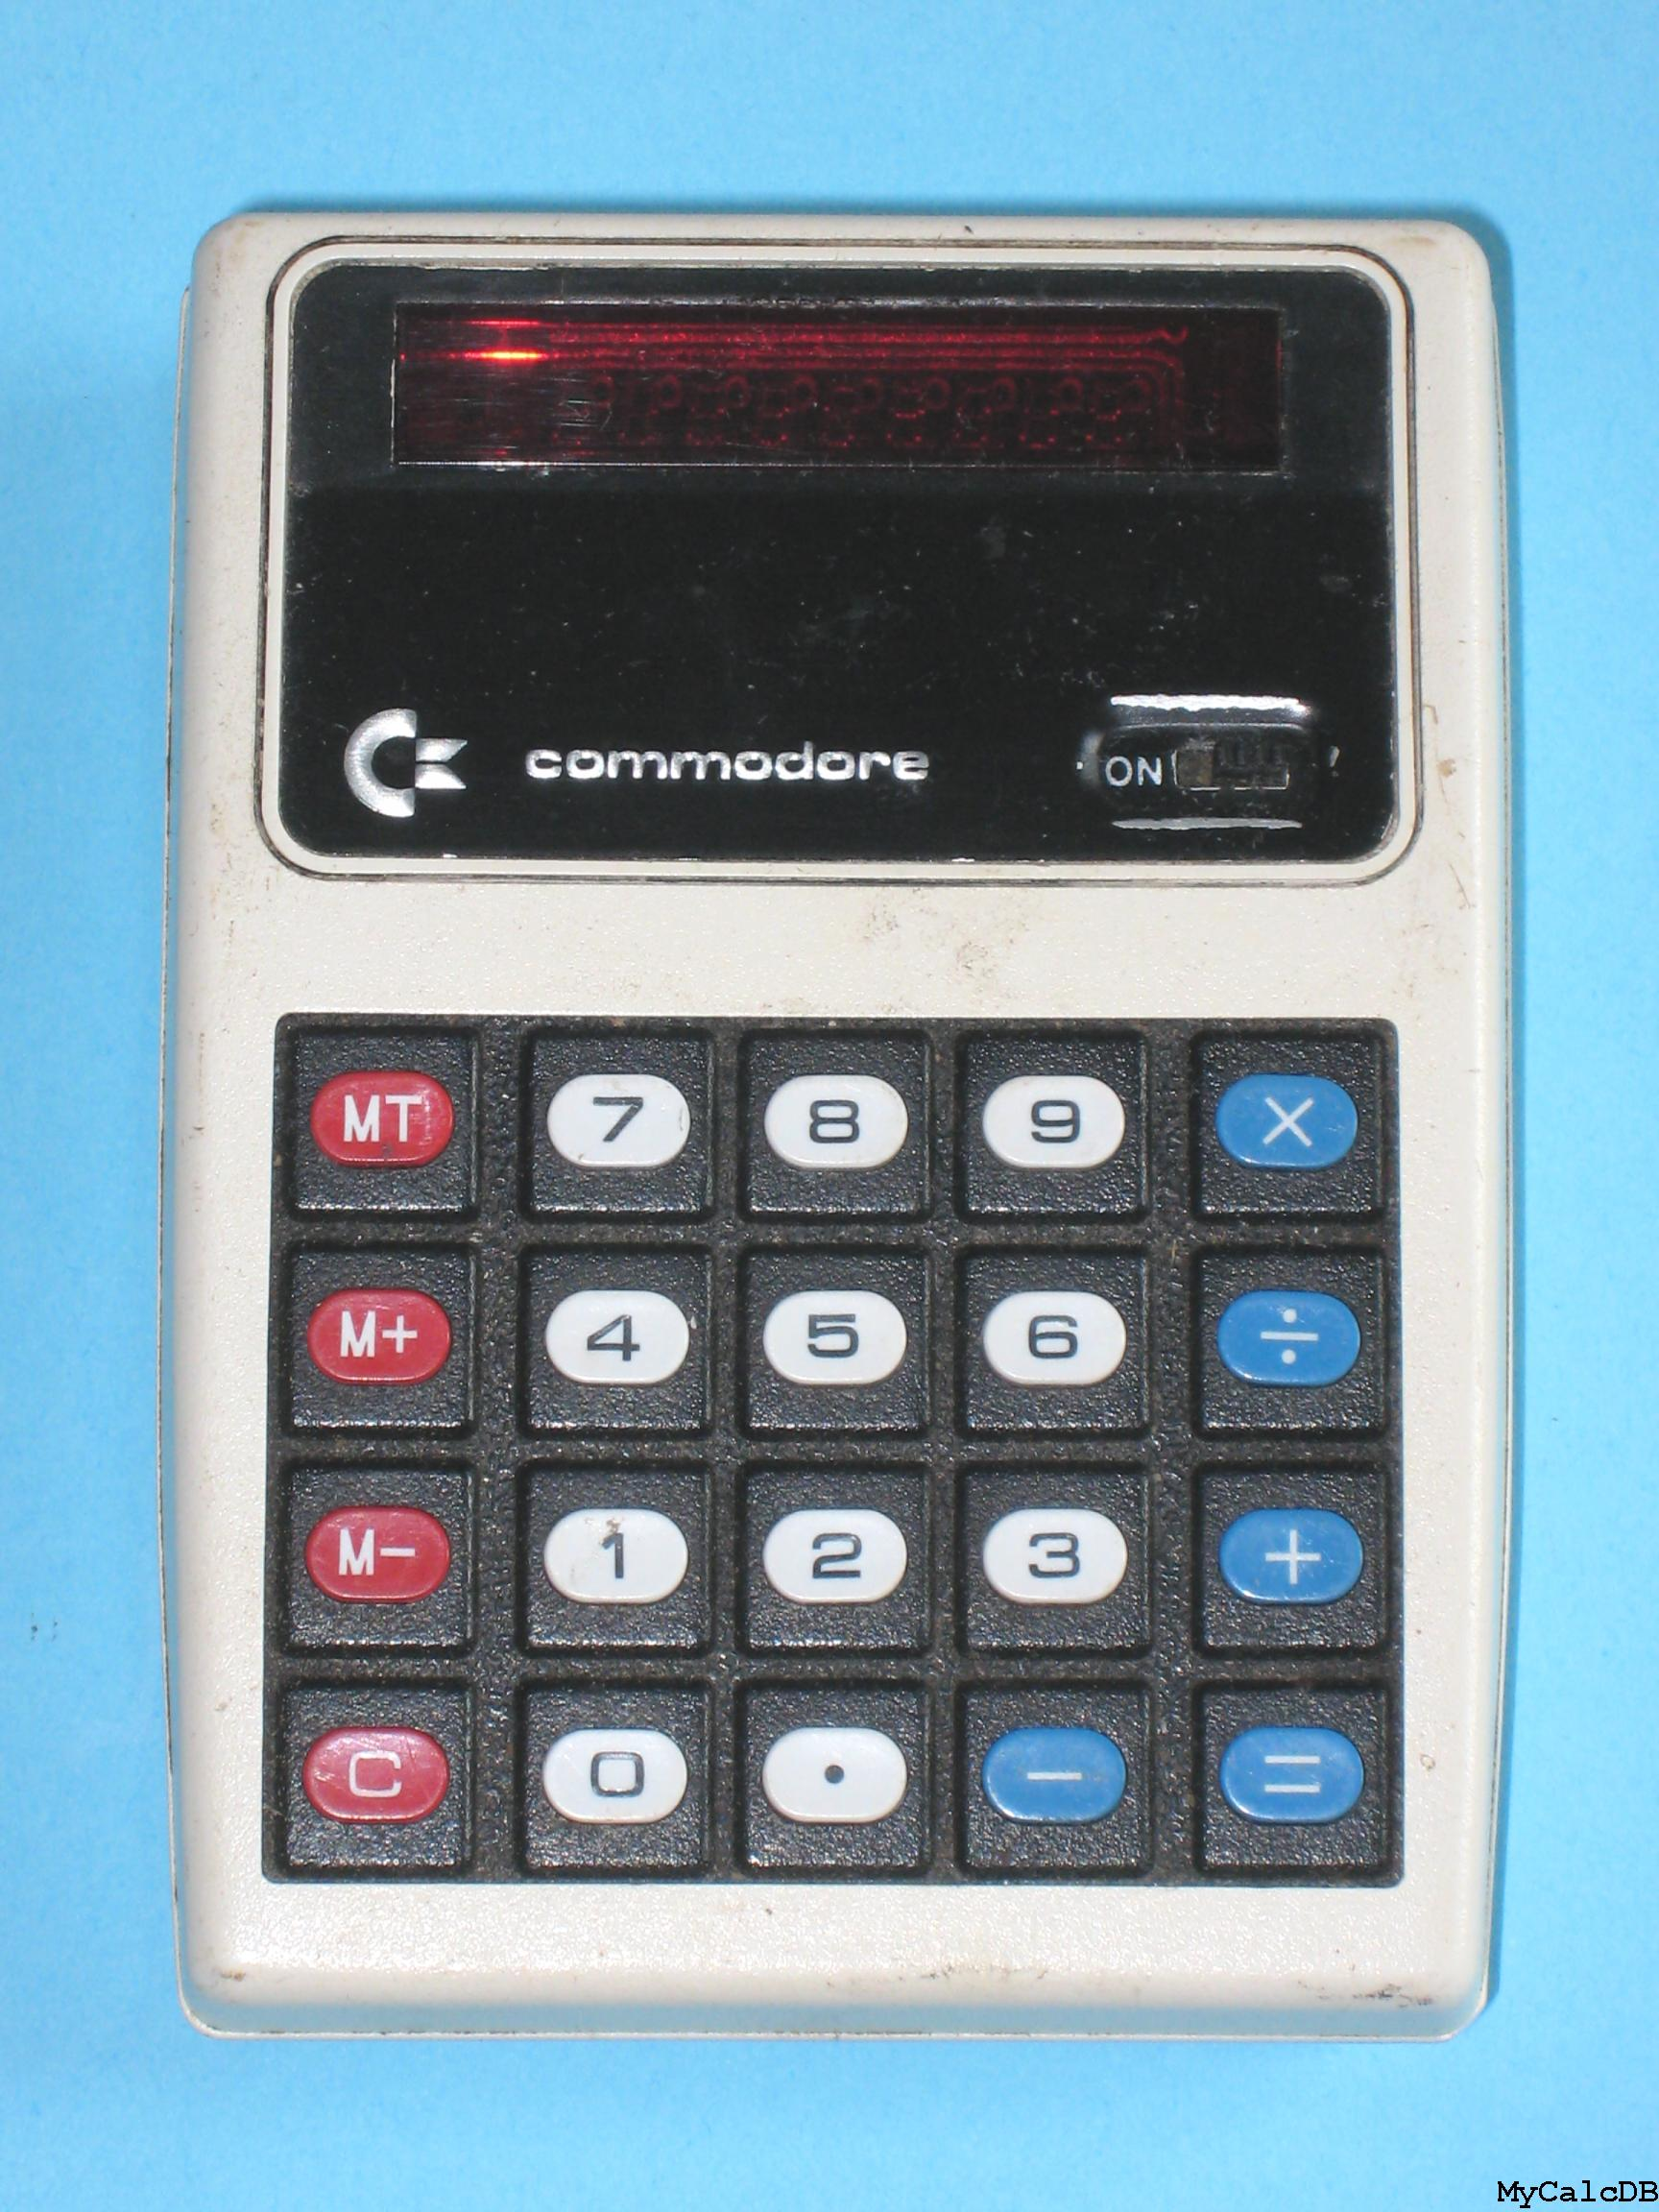 Commodore MM3M